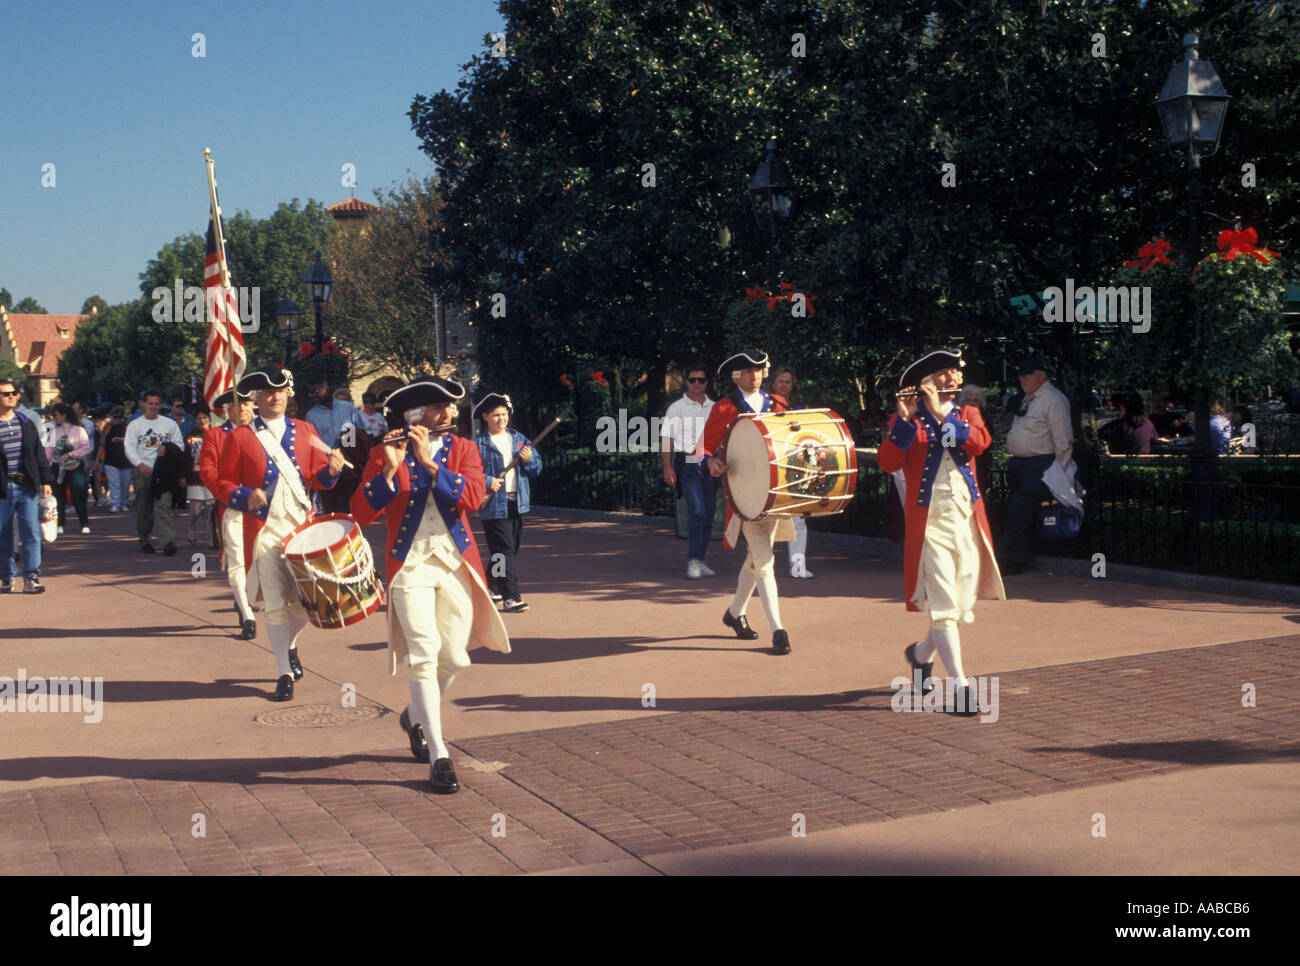 Lake Buena Vista, Florida, Orlando, Disney World, FL, AJ13988 Stockfoto